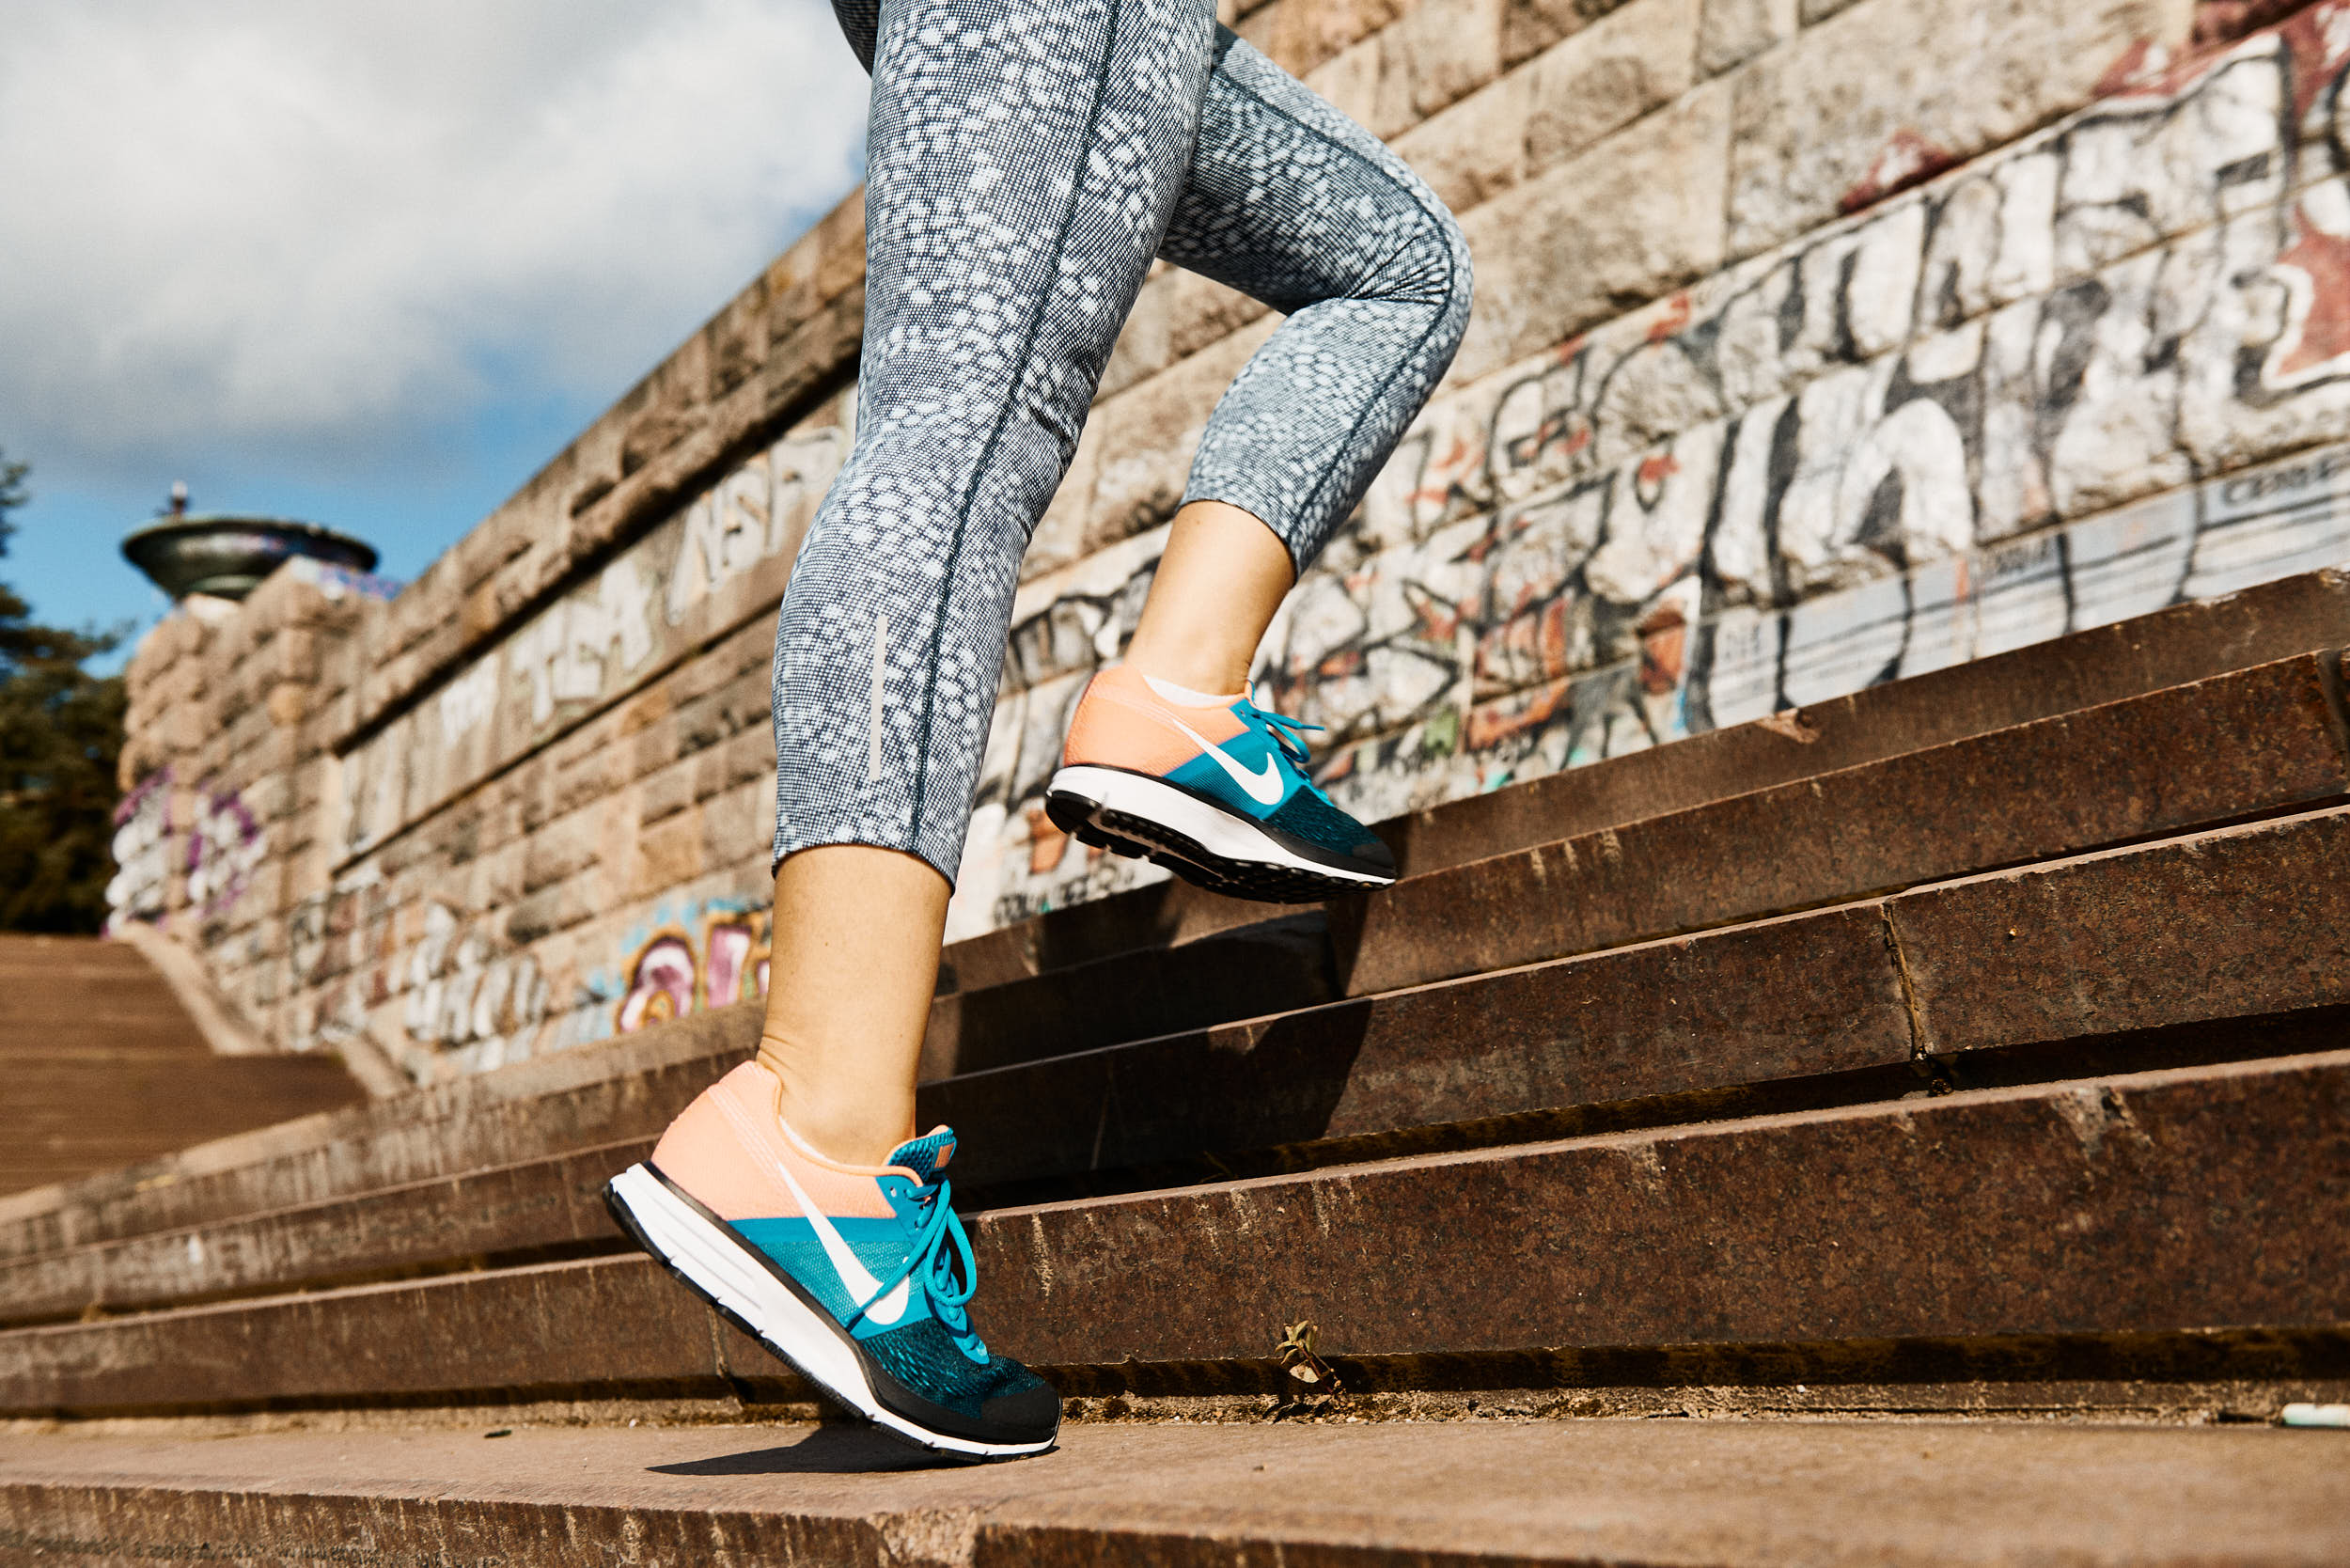 Running apparel advertising photography: detail of a girl in running shoes on stairs.